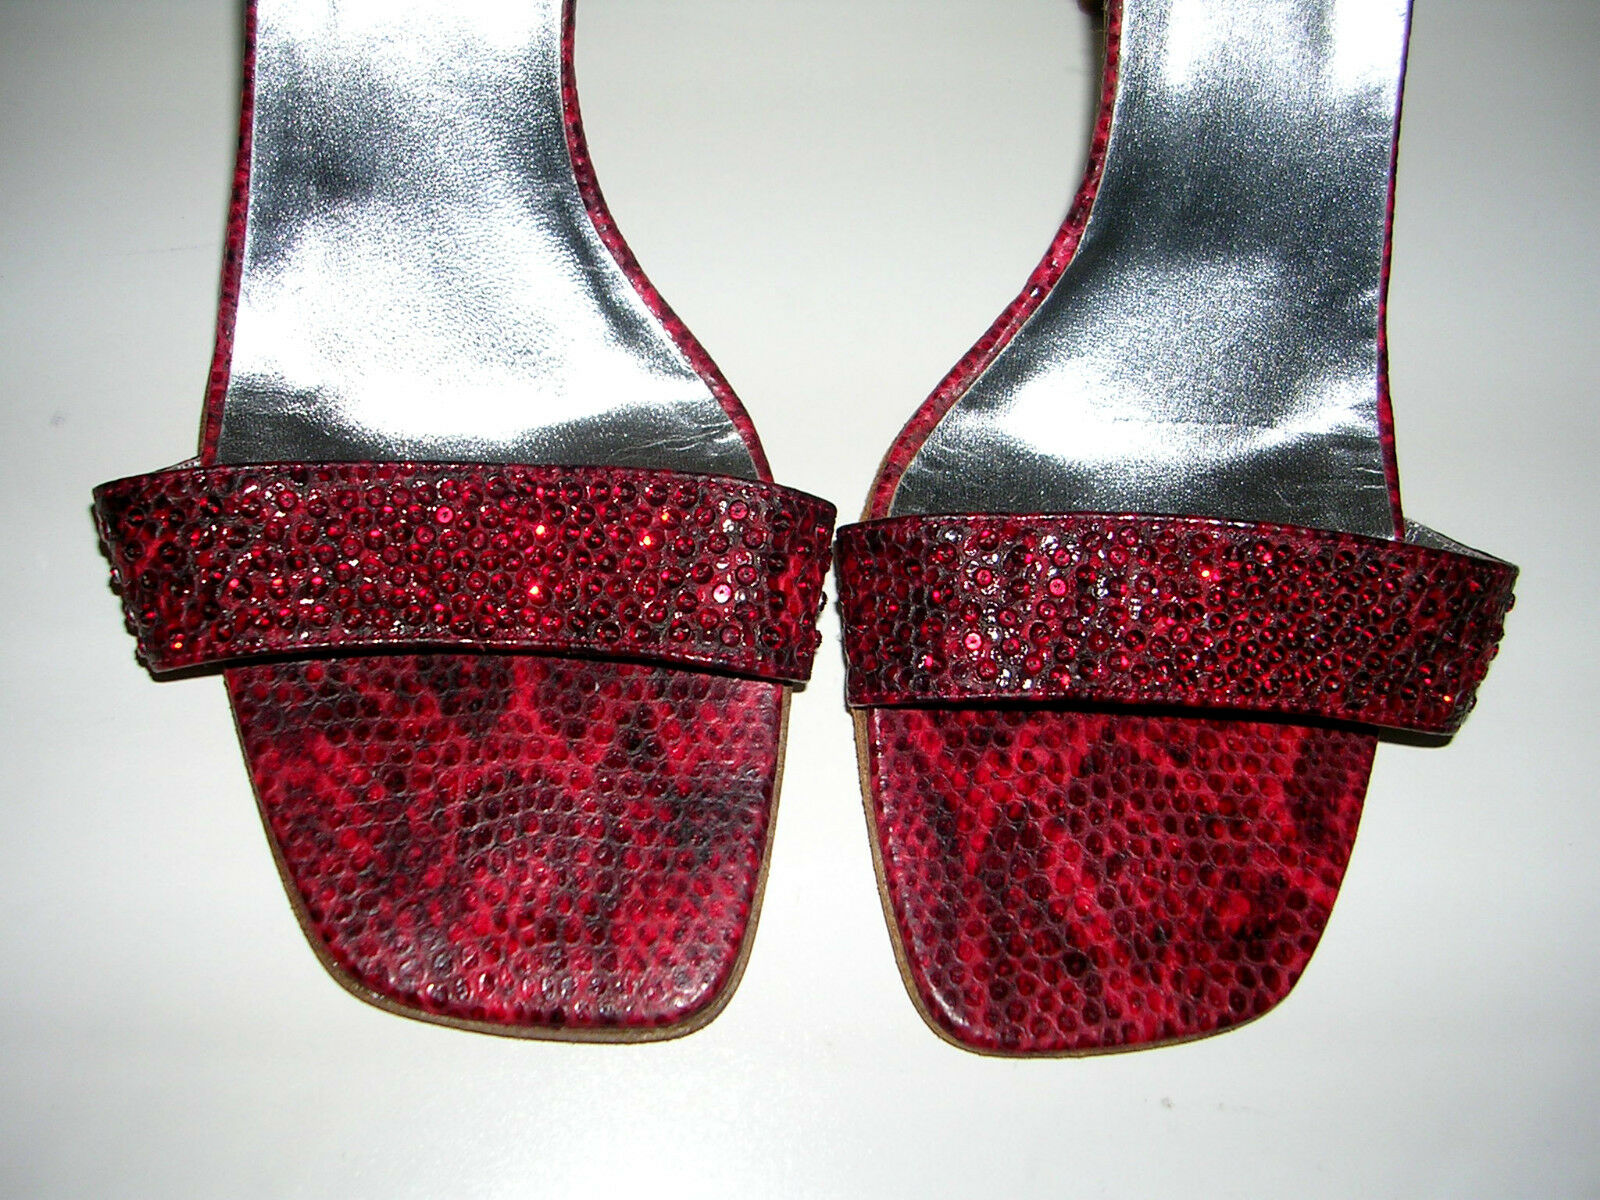 BADGLEY MISCHKA LIPSTICK ROT HIGH HEEL SLING SIZE BACKS WITH CRYSTALS SIZE SLING 38.5 ae67be